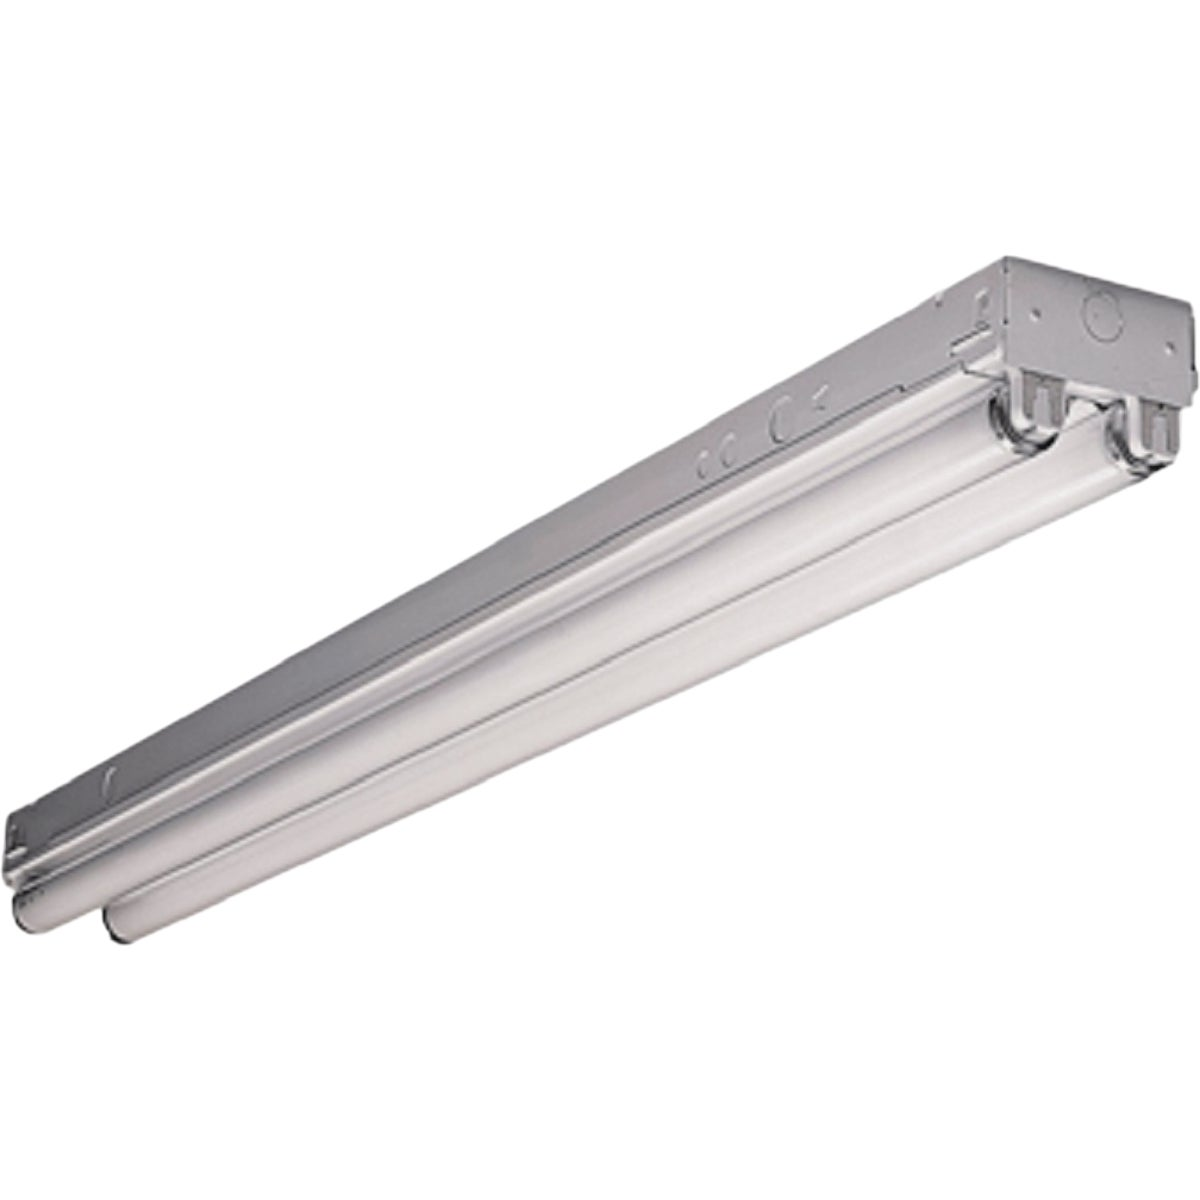 4' T12 2BULB STRIP LIGHT - C240120MBE2INKO by Lithonia Lighting